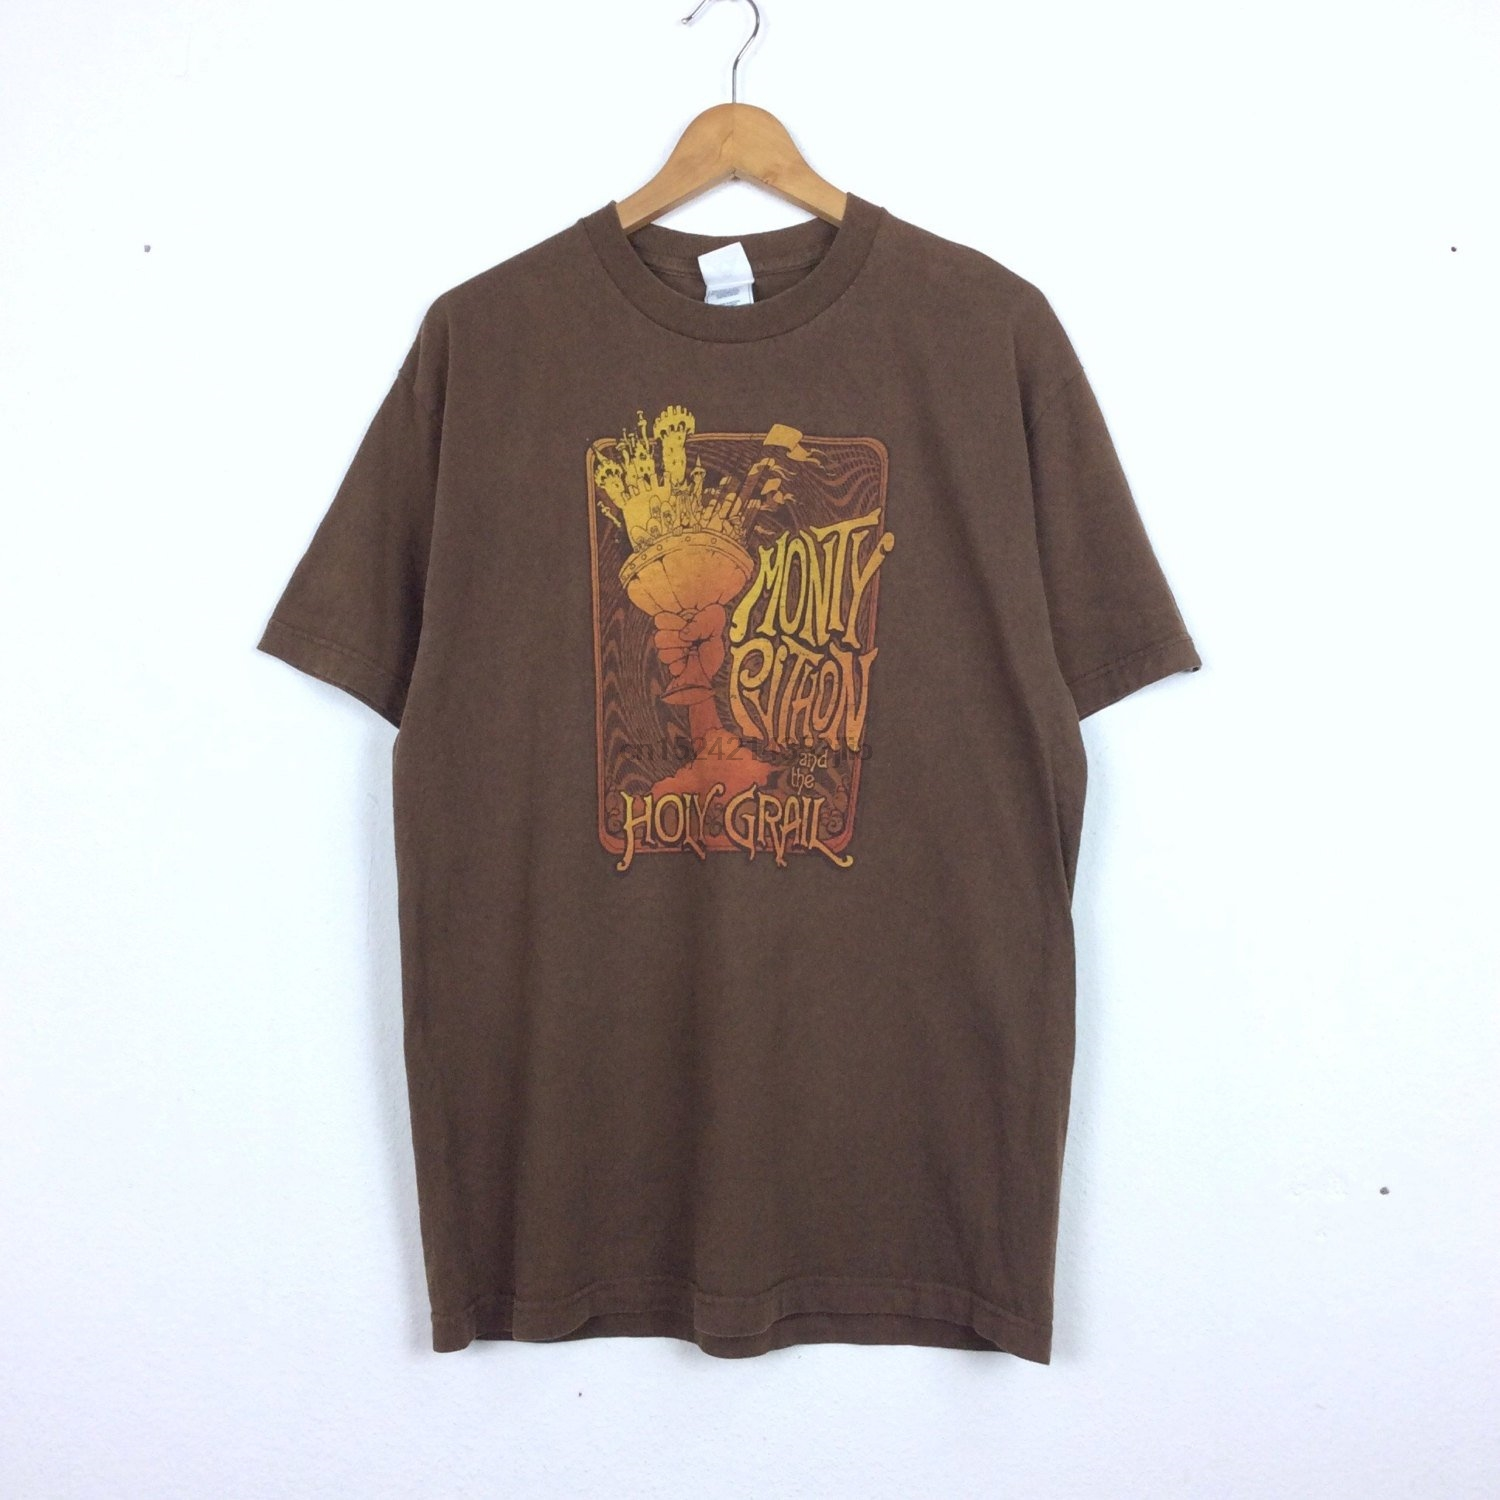 f5f6a5b12 Vintage Monty Phyton and The Holy Grail shirt vintage Movie Viking